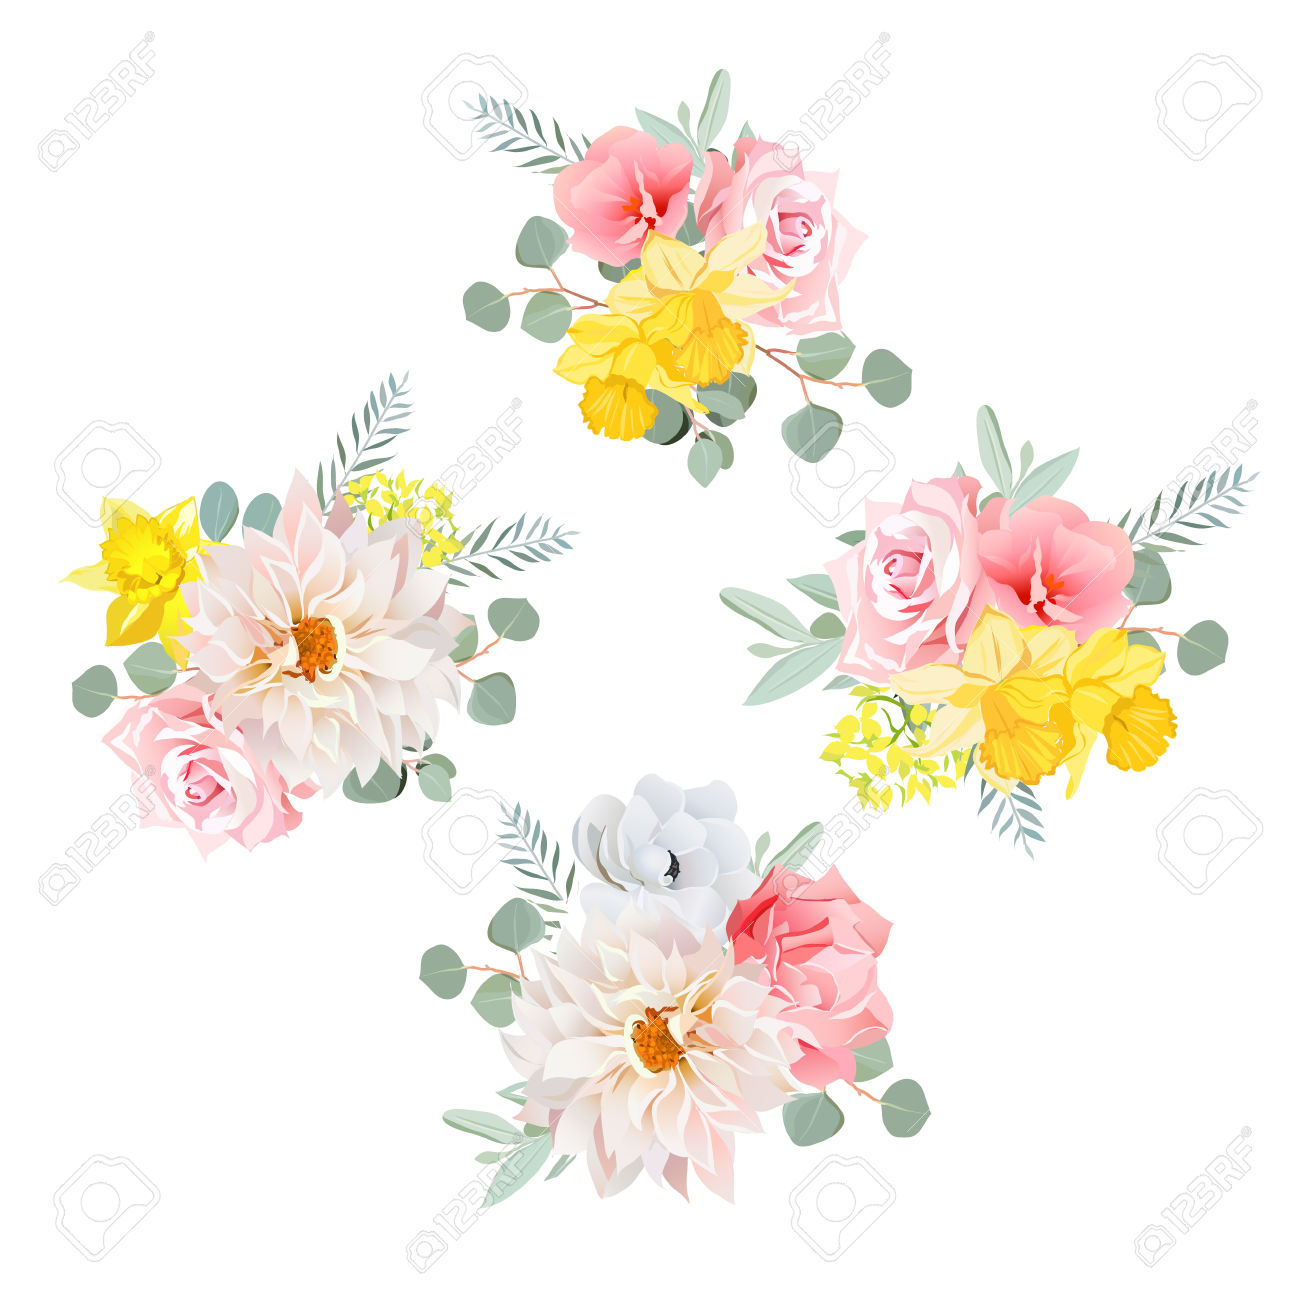 Bouquets Of Dahlia, Rose, Narcissus, Anemone, Pink Flowers And.